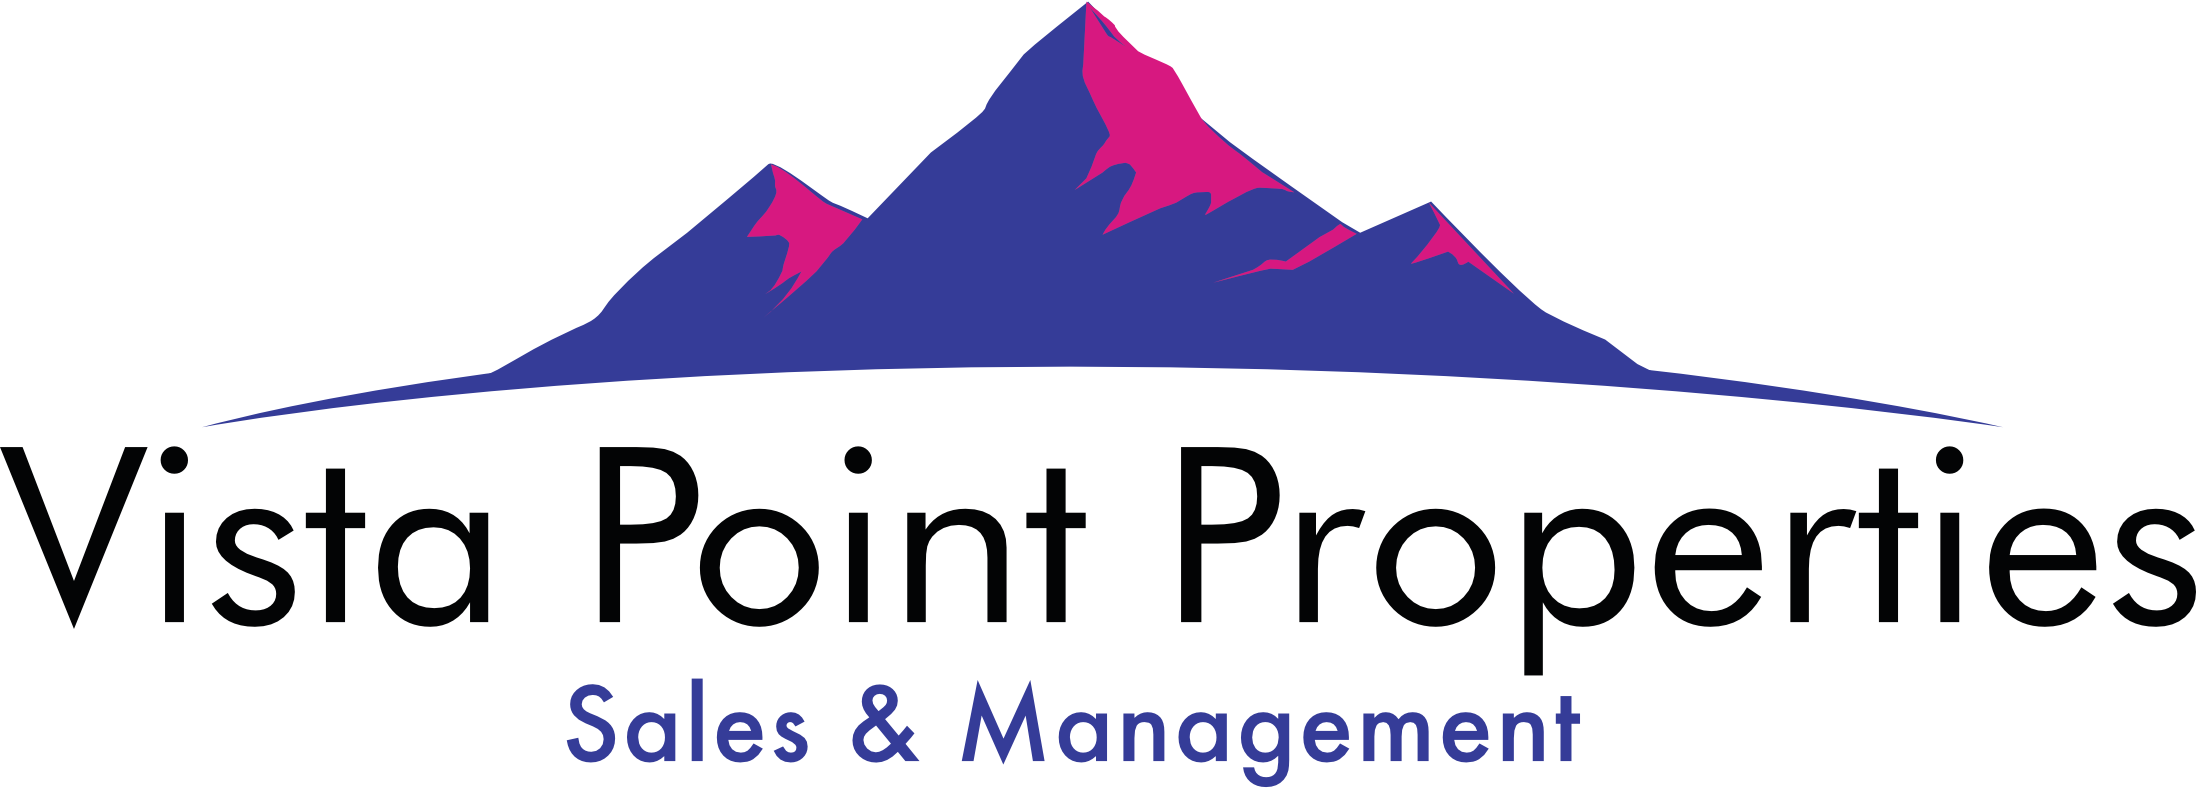 Vista Point Properties |   Buyer Resources